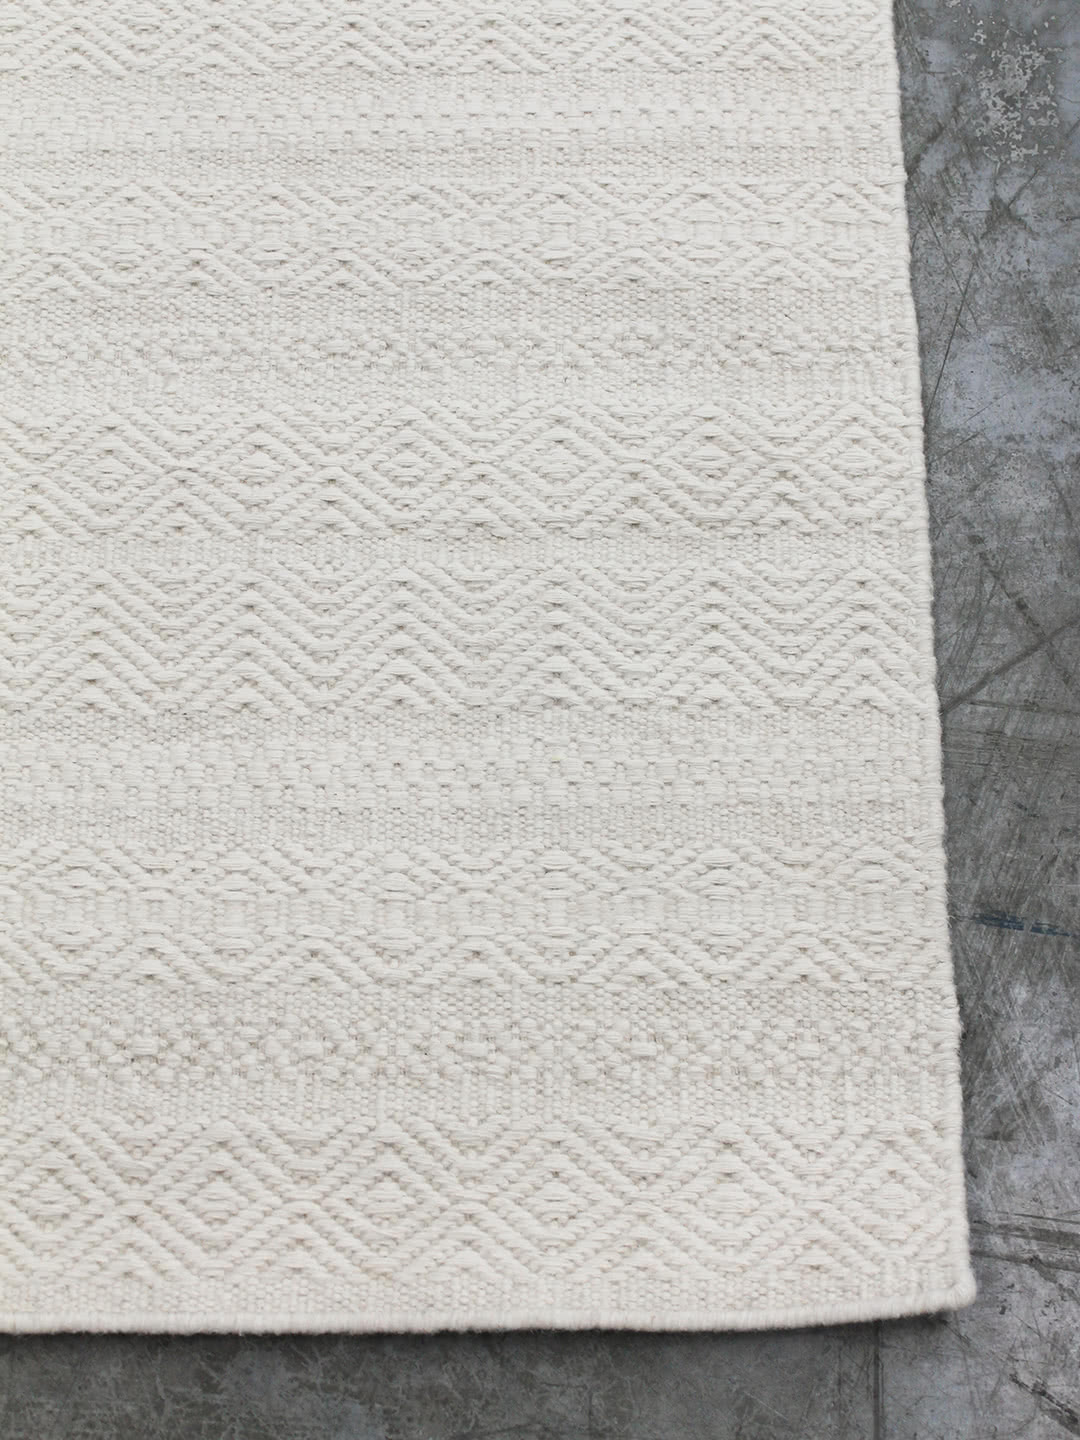 Ivory pure wool rugs Perth